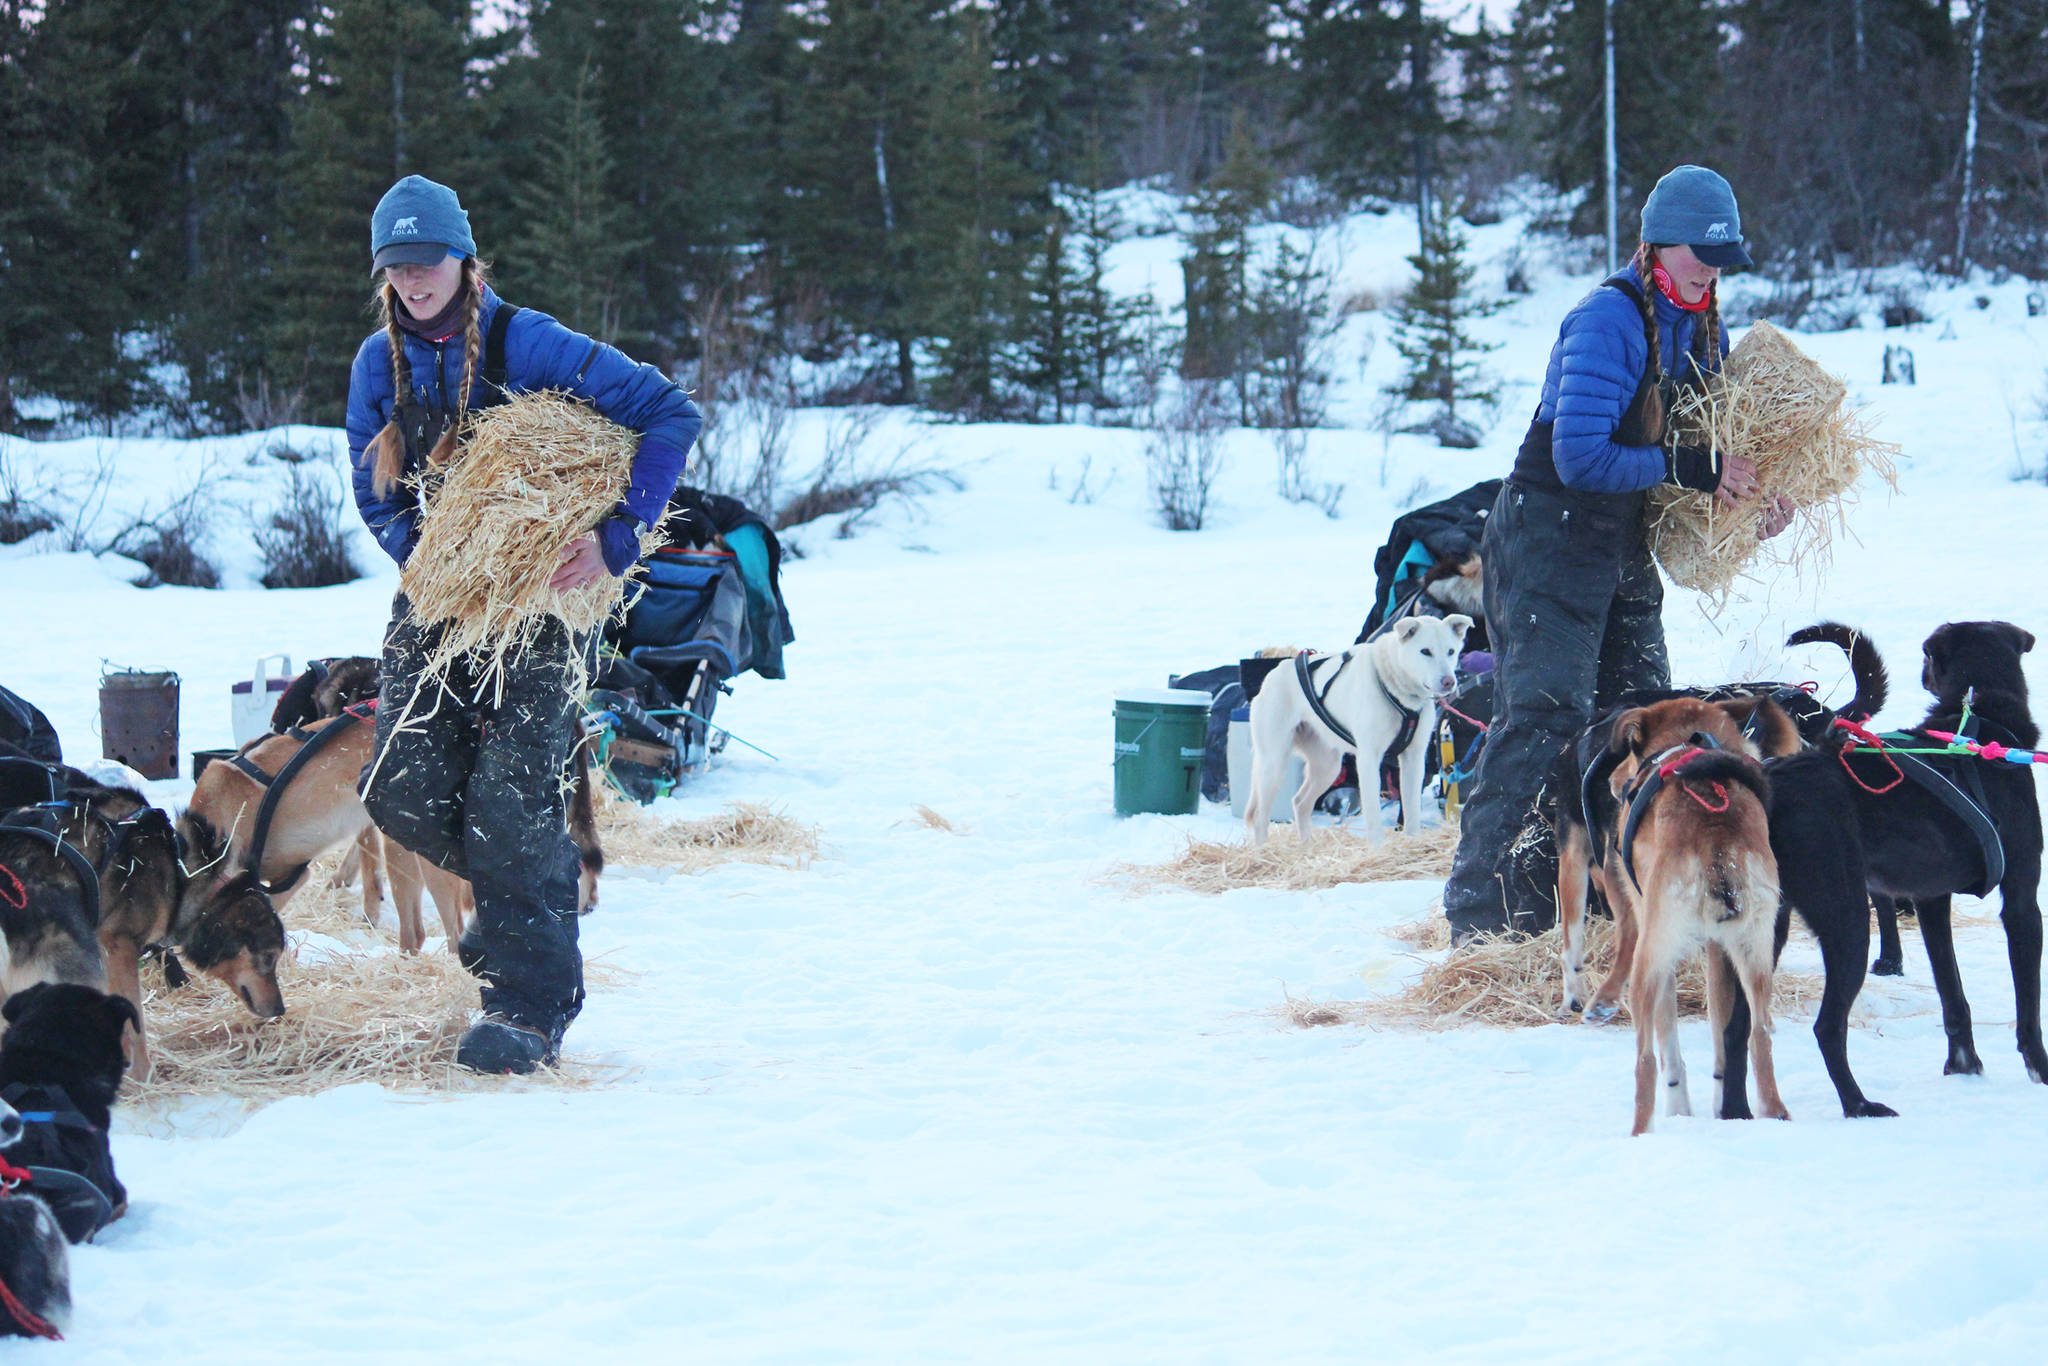 Kristy and Anna Berington lay out hay for their respective dog teams at the first checkpoint of this year's Tustumena 200 Sled Dog Race on Saturday, Jan. 26, 2019 at McNeil Canyon Elementary School near Homer, Alaska. (Photo by Megan Pacer/Homer News)